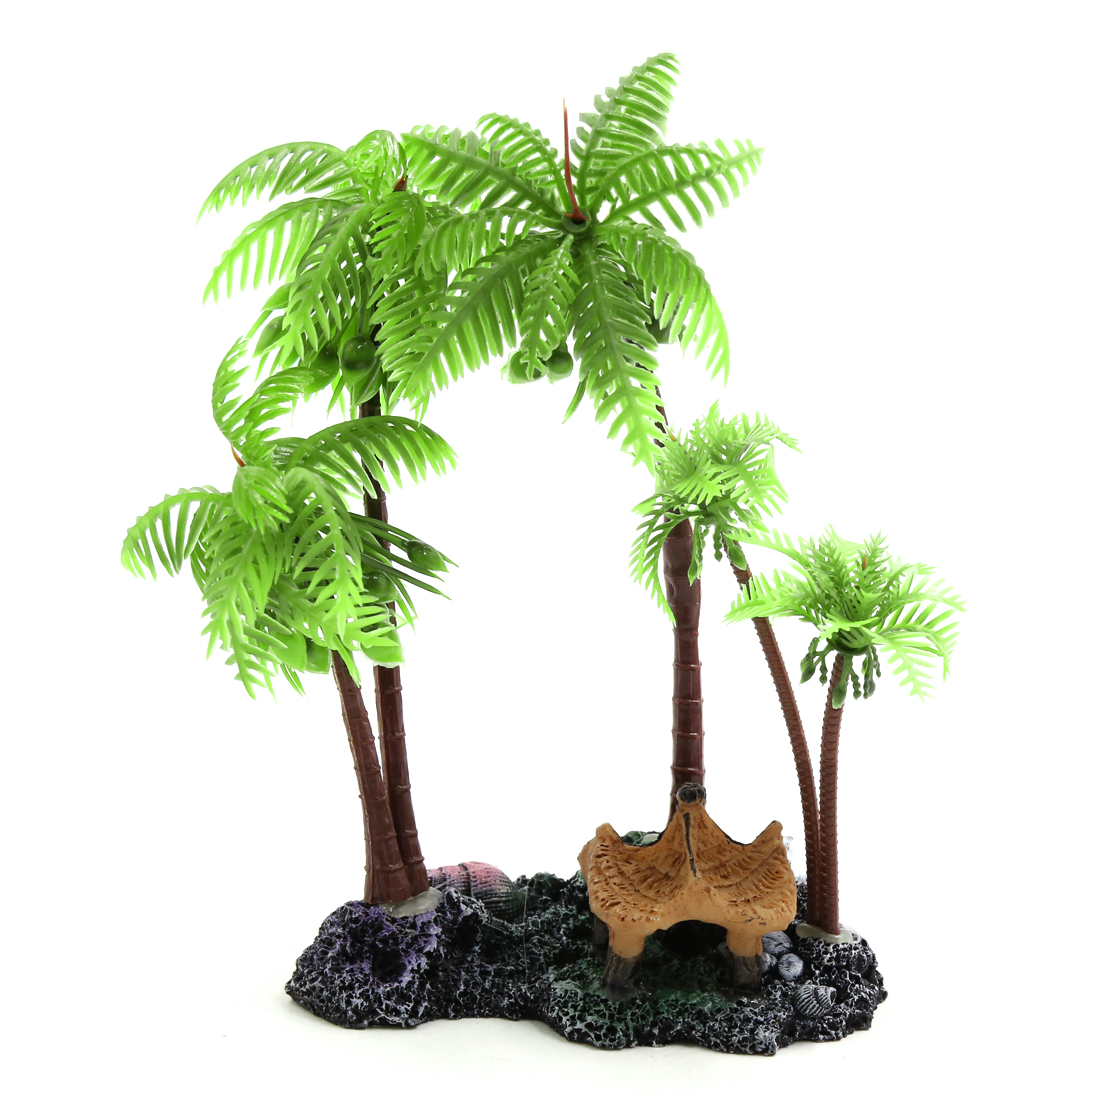 Green Plastic Coconut Tree Plant Decor Decor for Reptiles Amphibians